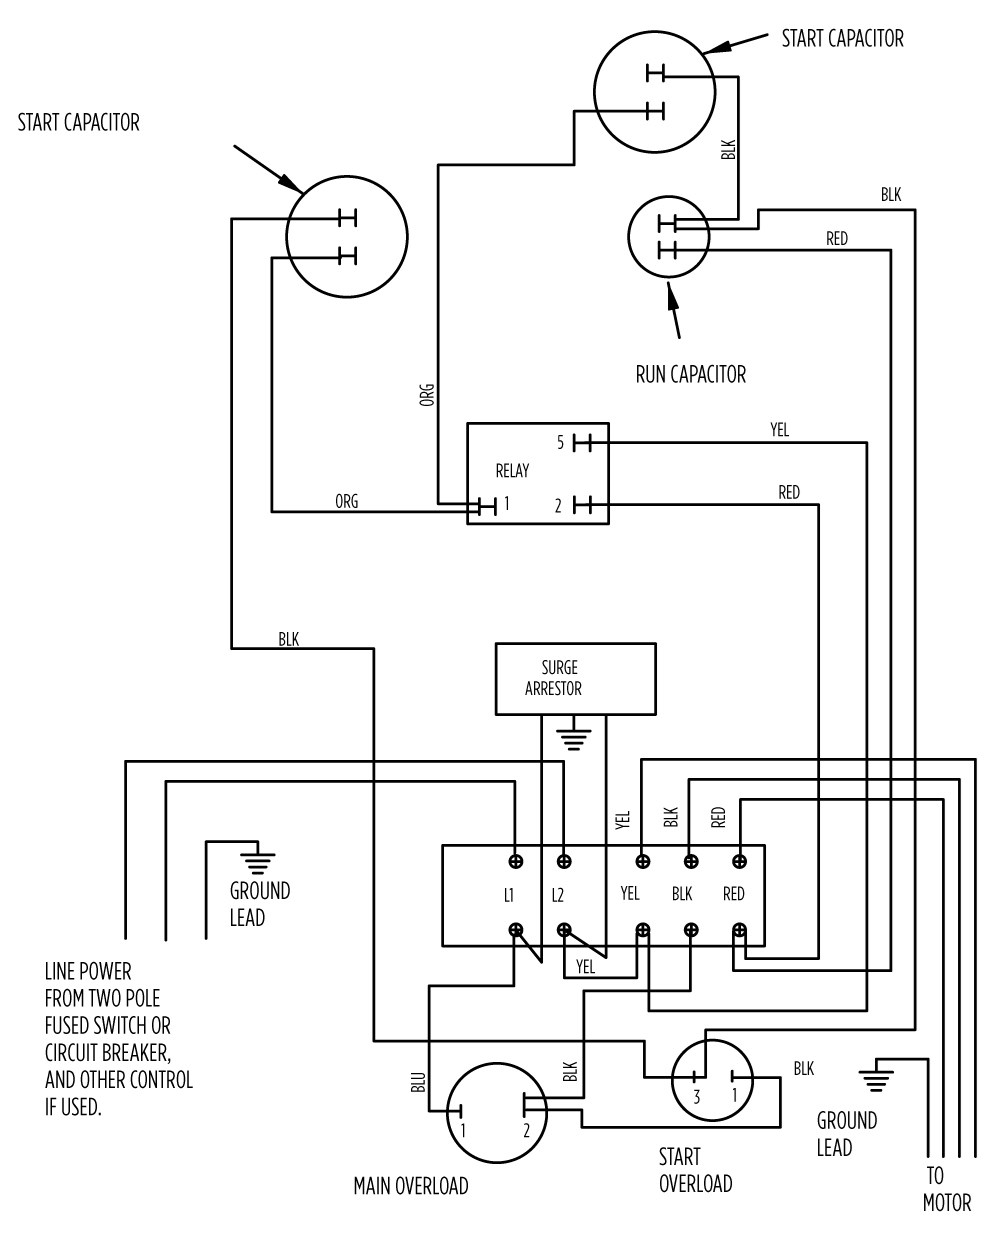 Franklin electric motor wiring diagram single phase motors and controls design